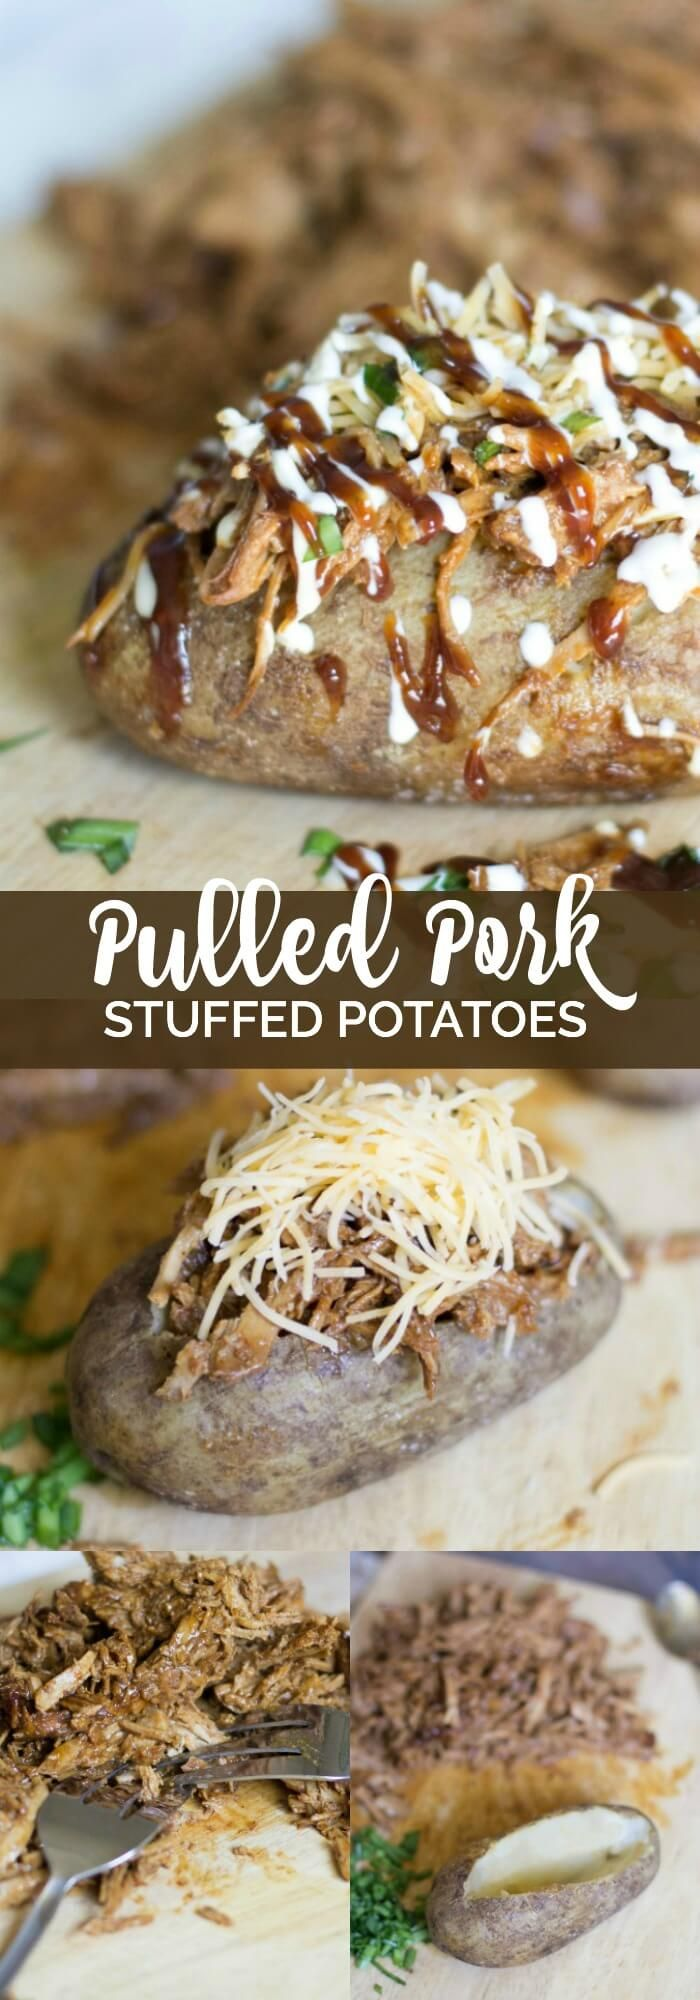 These Pulled Pork Stuffed Potatoes taste amazing and your whole family will love them! #KCMasterpiece #ad @KCMBBQ